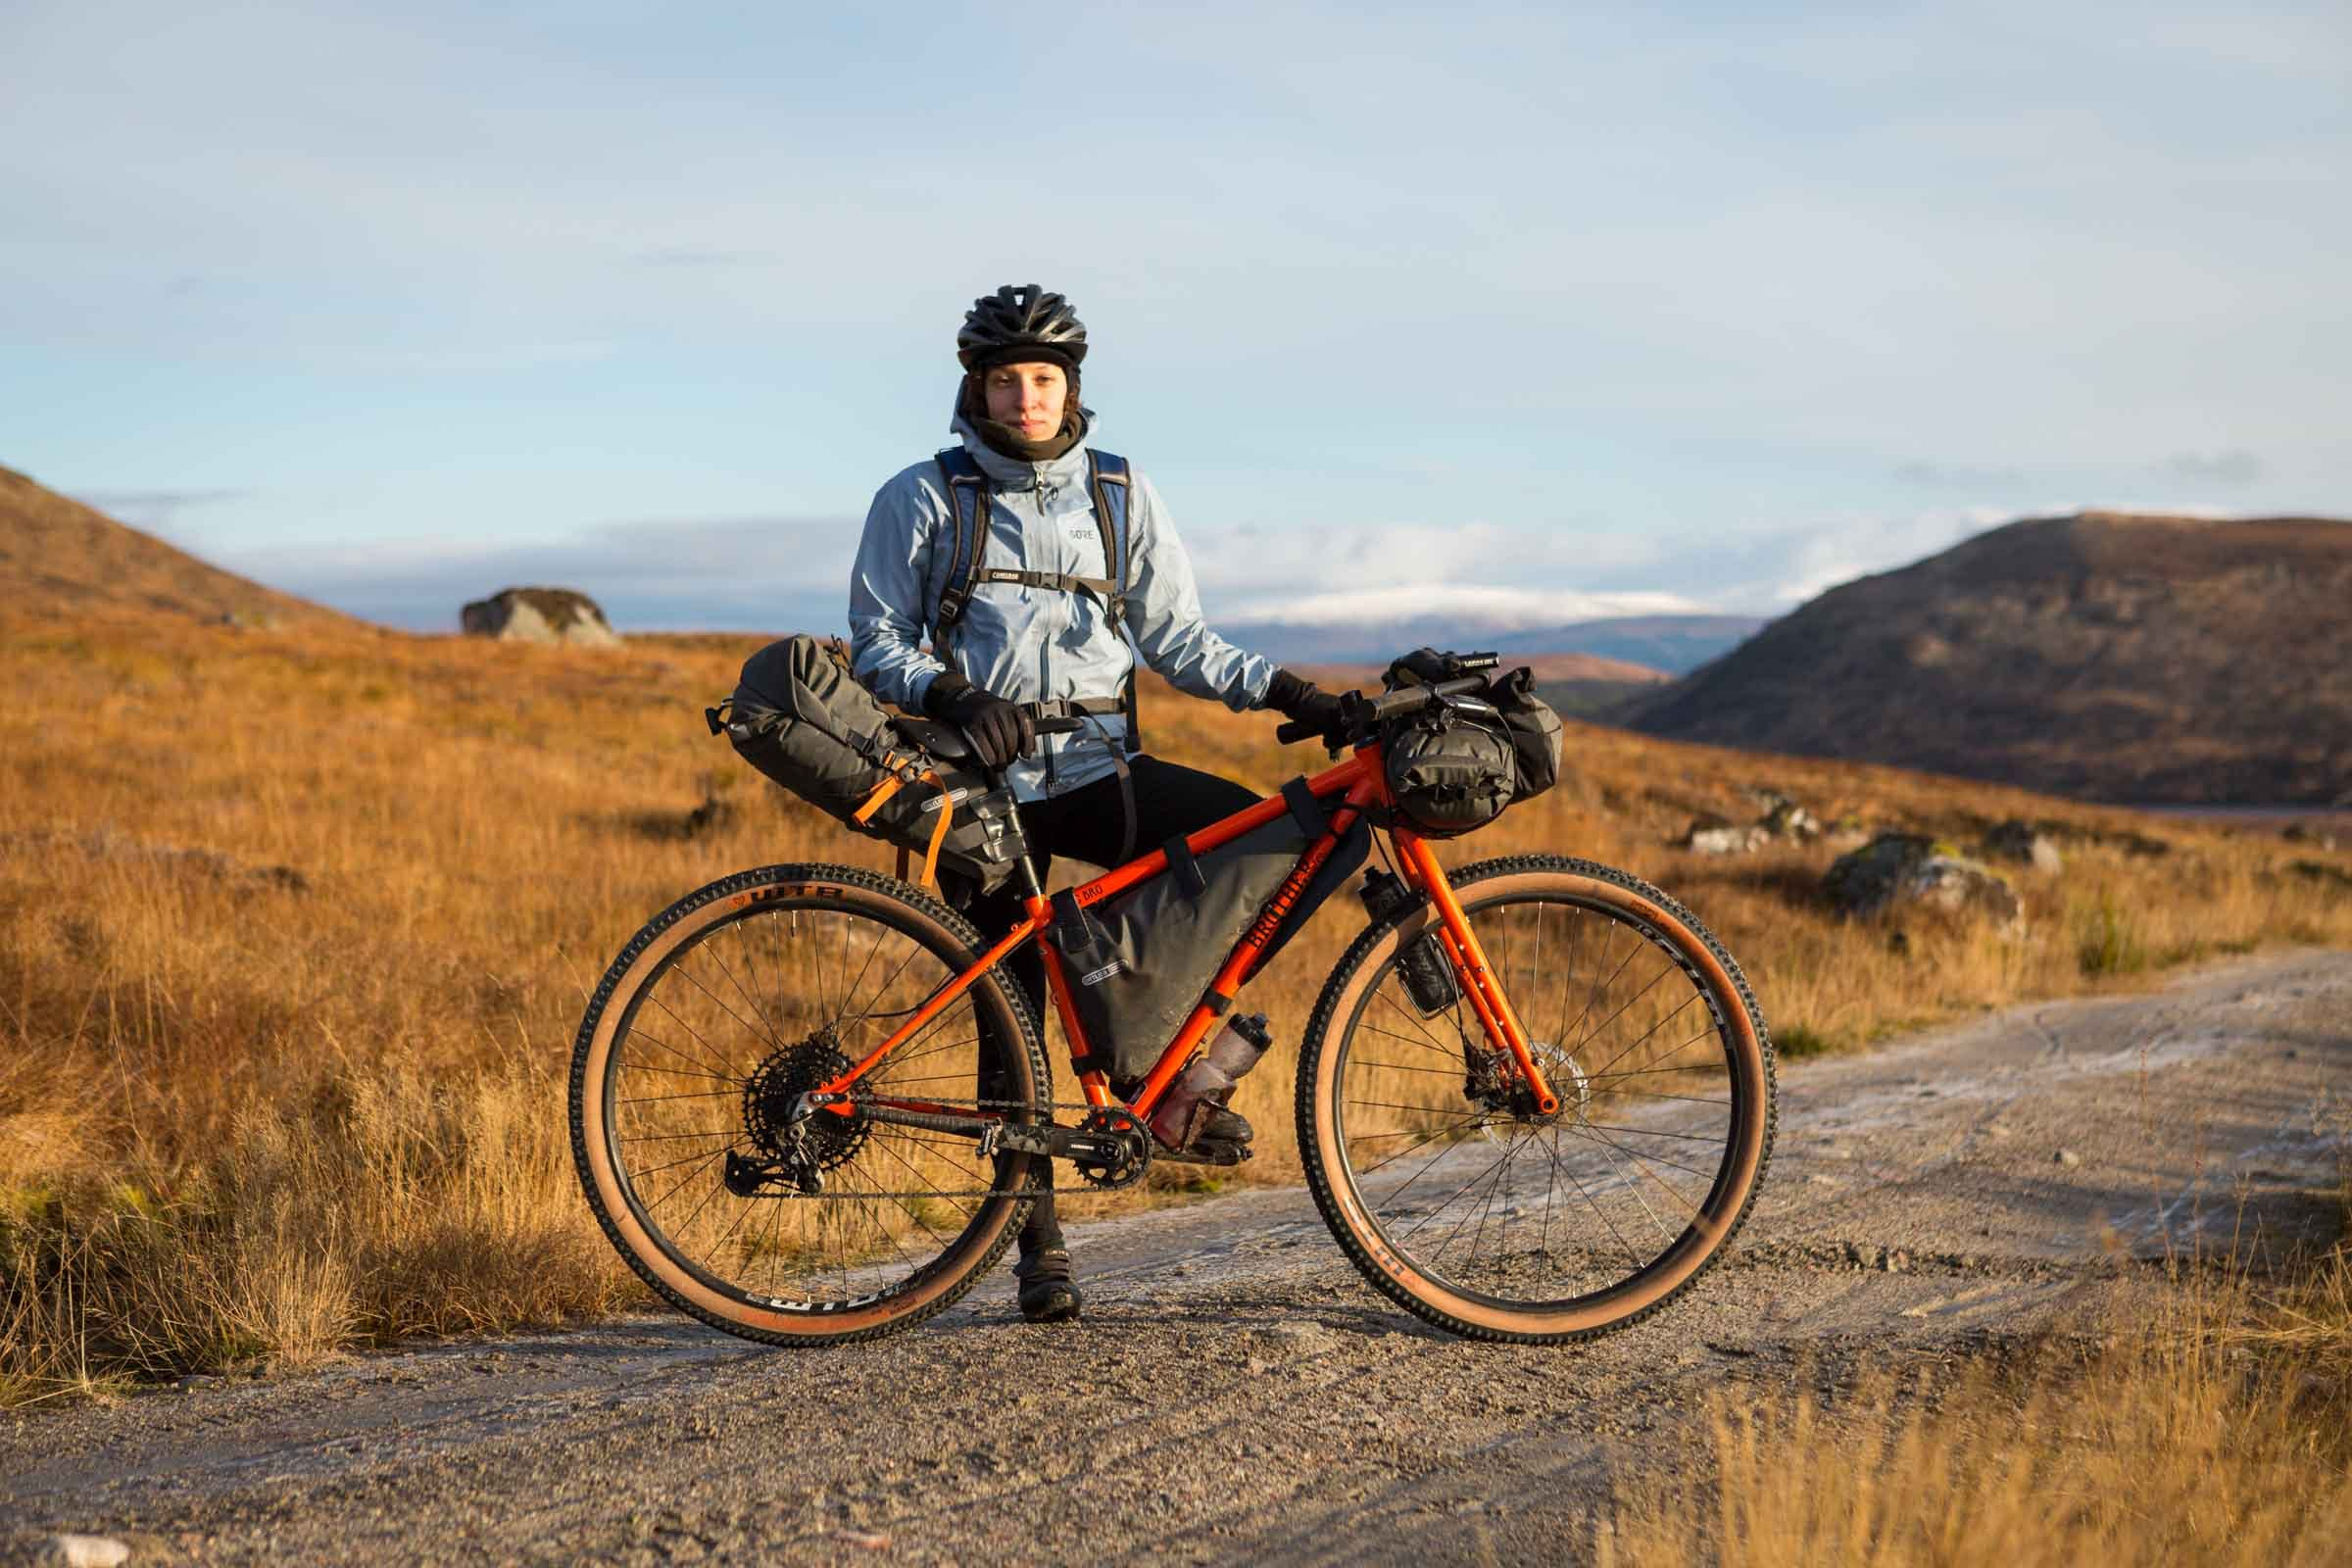 Pannier_Rainspotting_Bikepacking-Scotland-Highlands_058